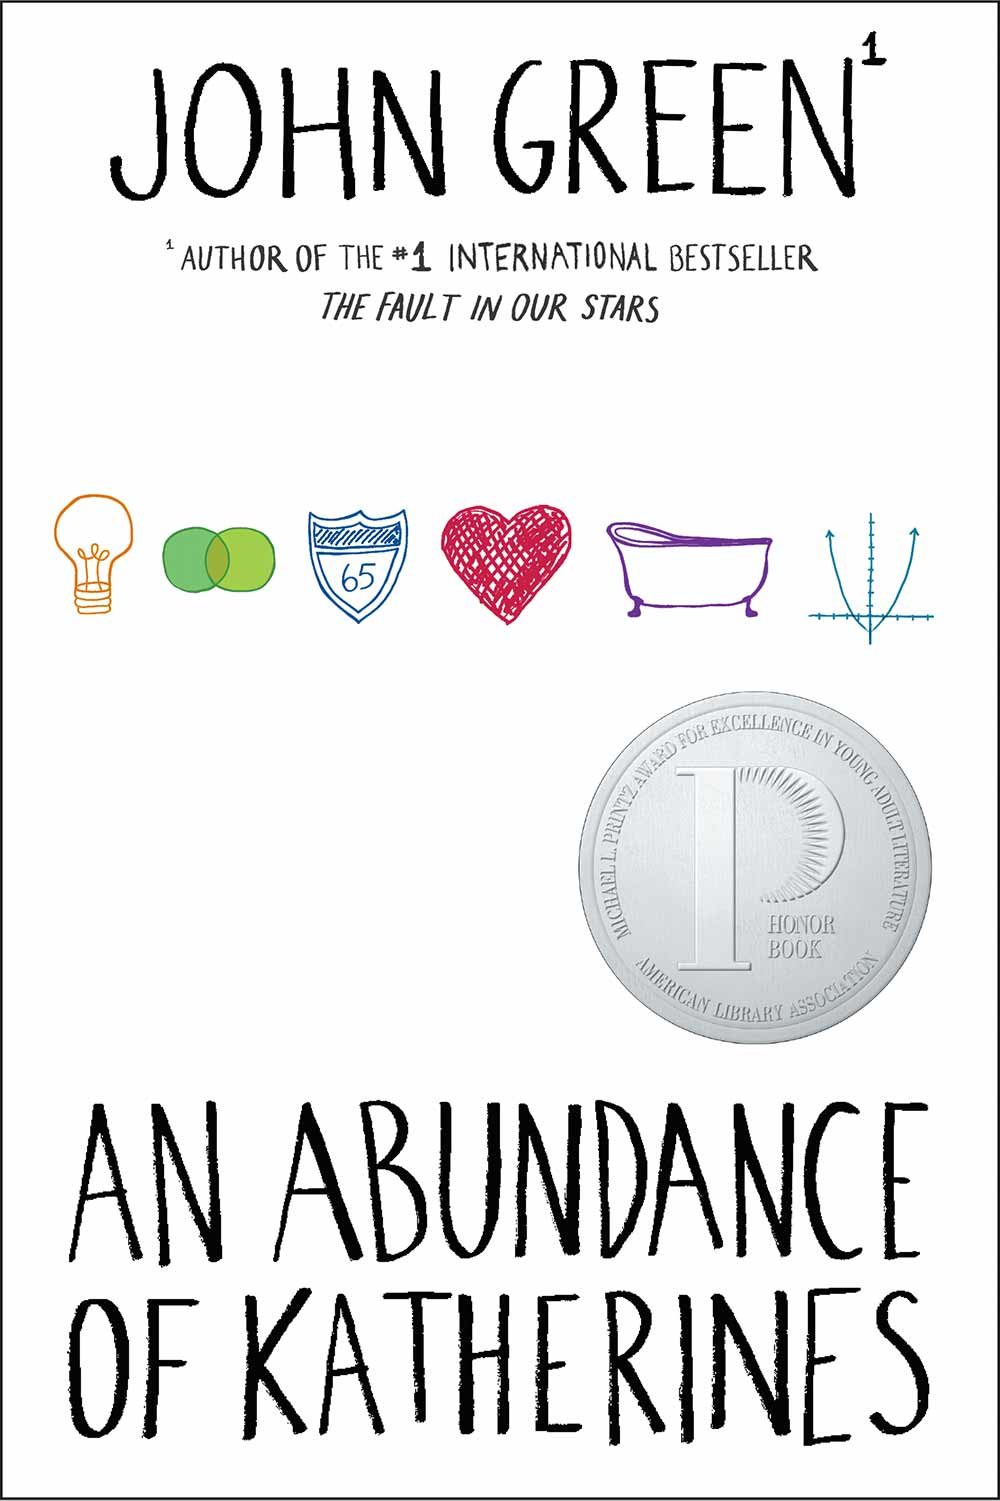 An Abundance of Katherines is a cute road trip story of a child prodigy recovering from heartache, with his best friend. And a lot more because it's by John Green. #YABooks #Books #BookReview #JohnGreen